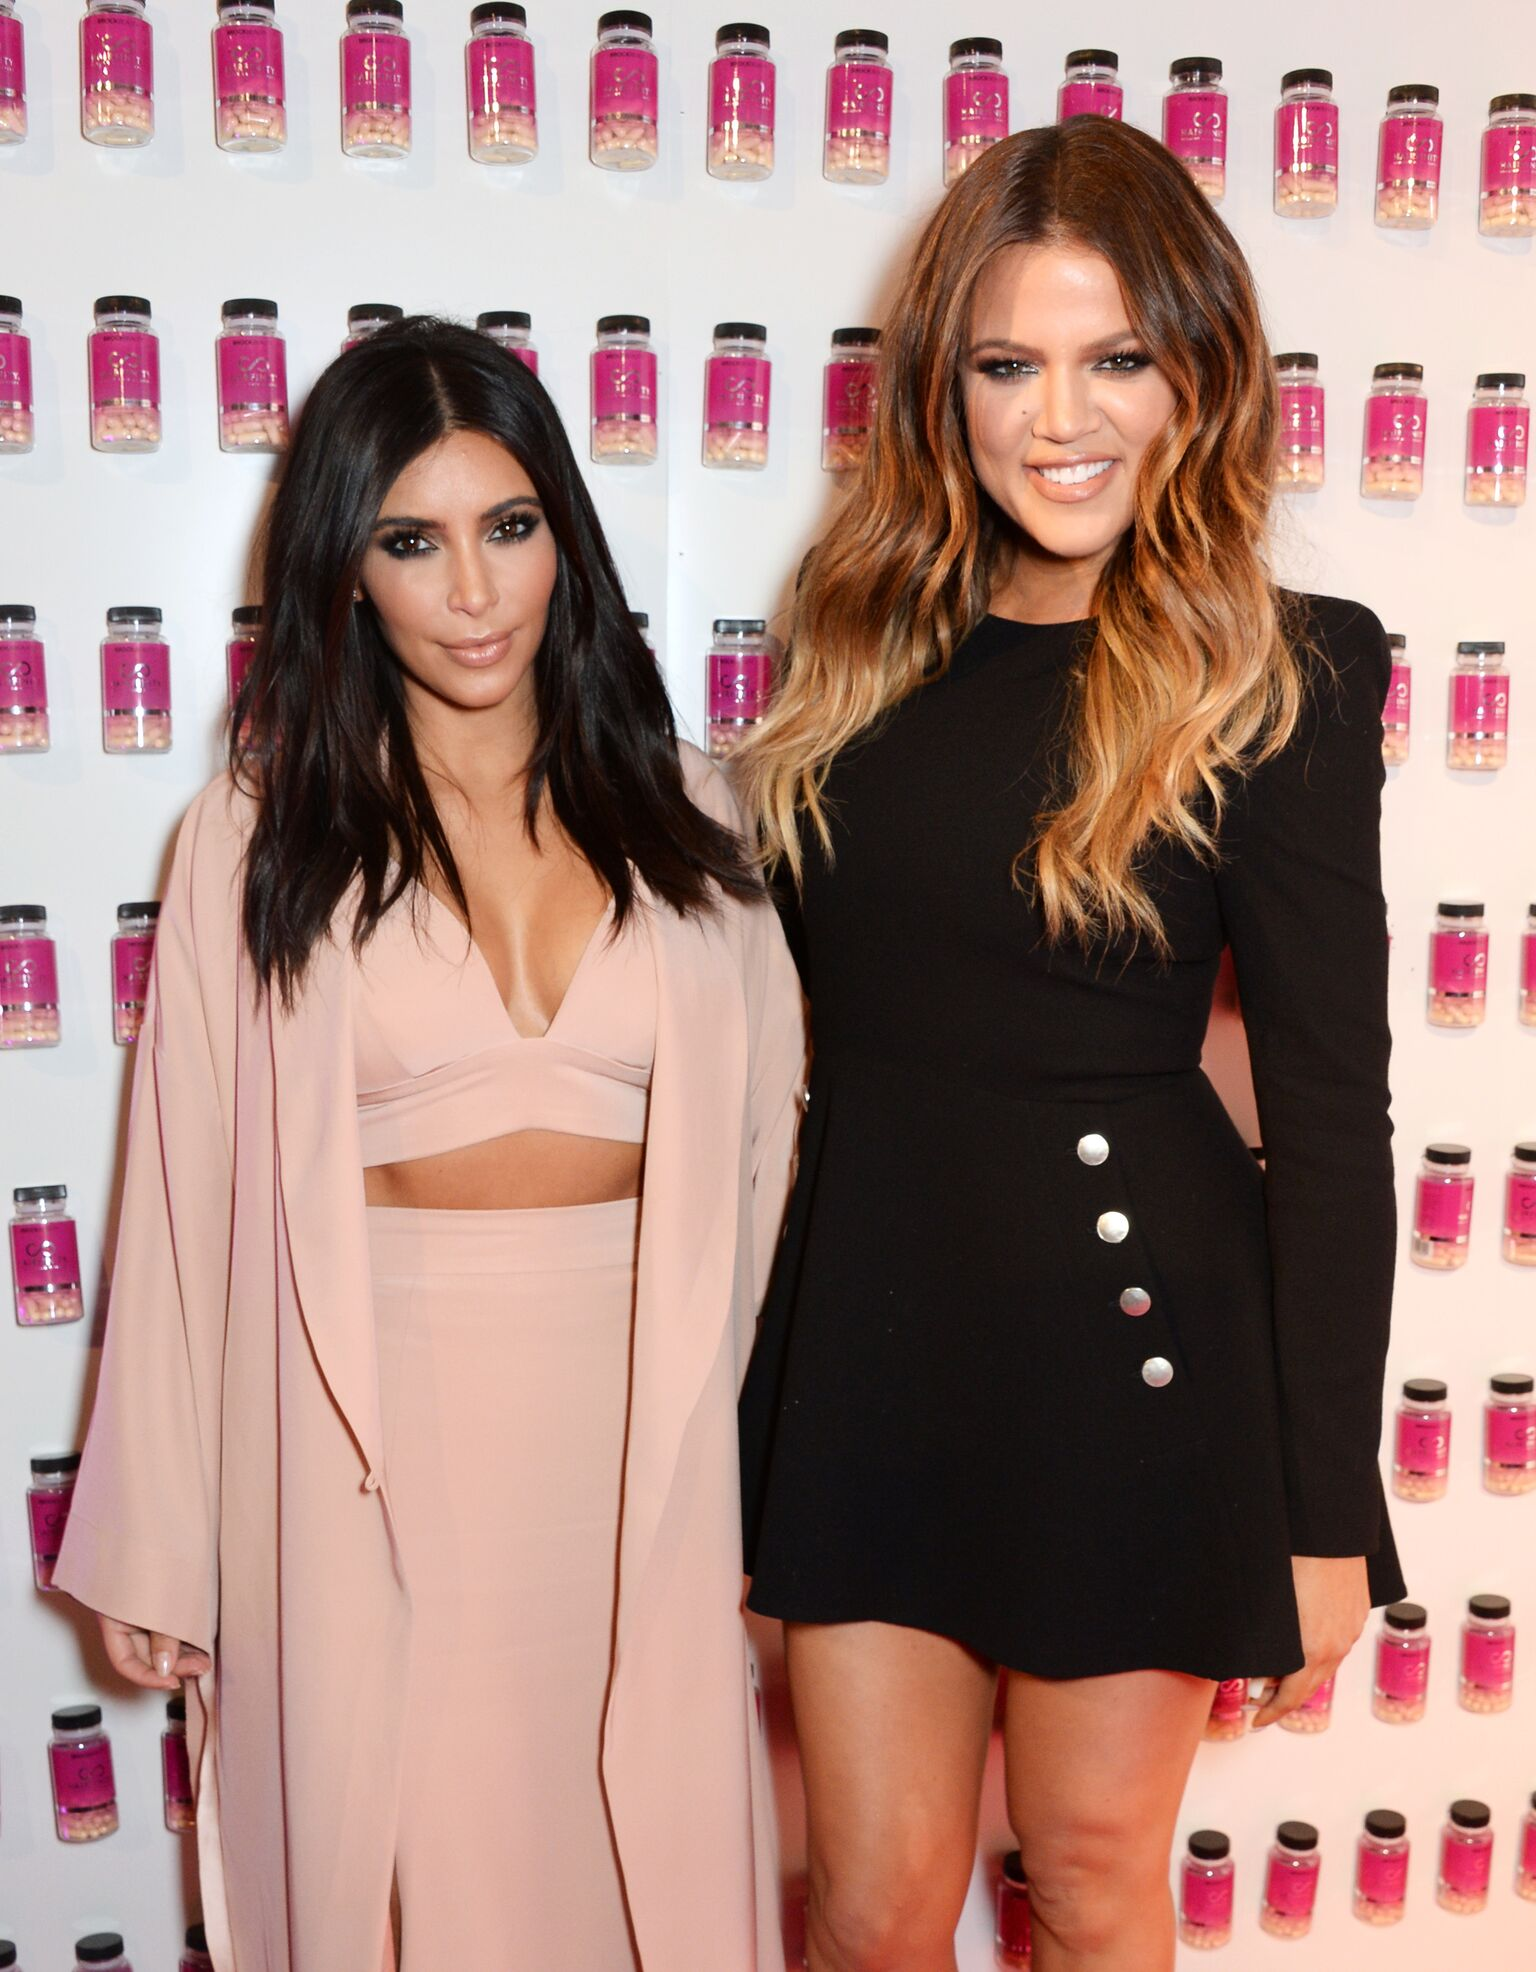 Kim Kardashian West (L) and Khloe Kardashian attend the Hairfinity UK Launch as special guests  | Getty Images